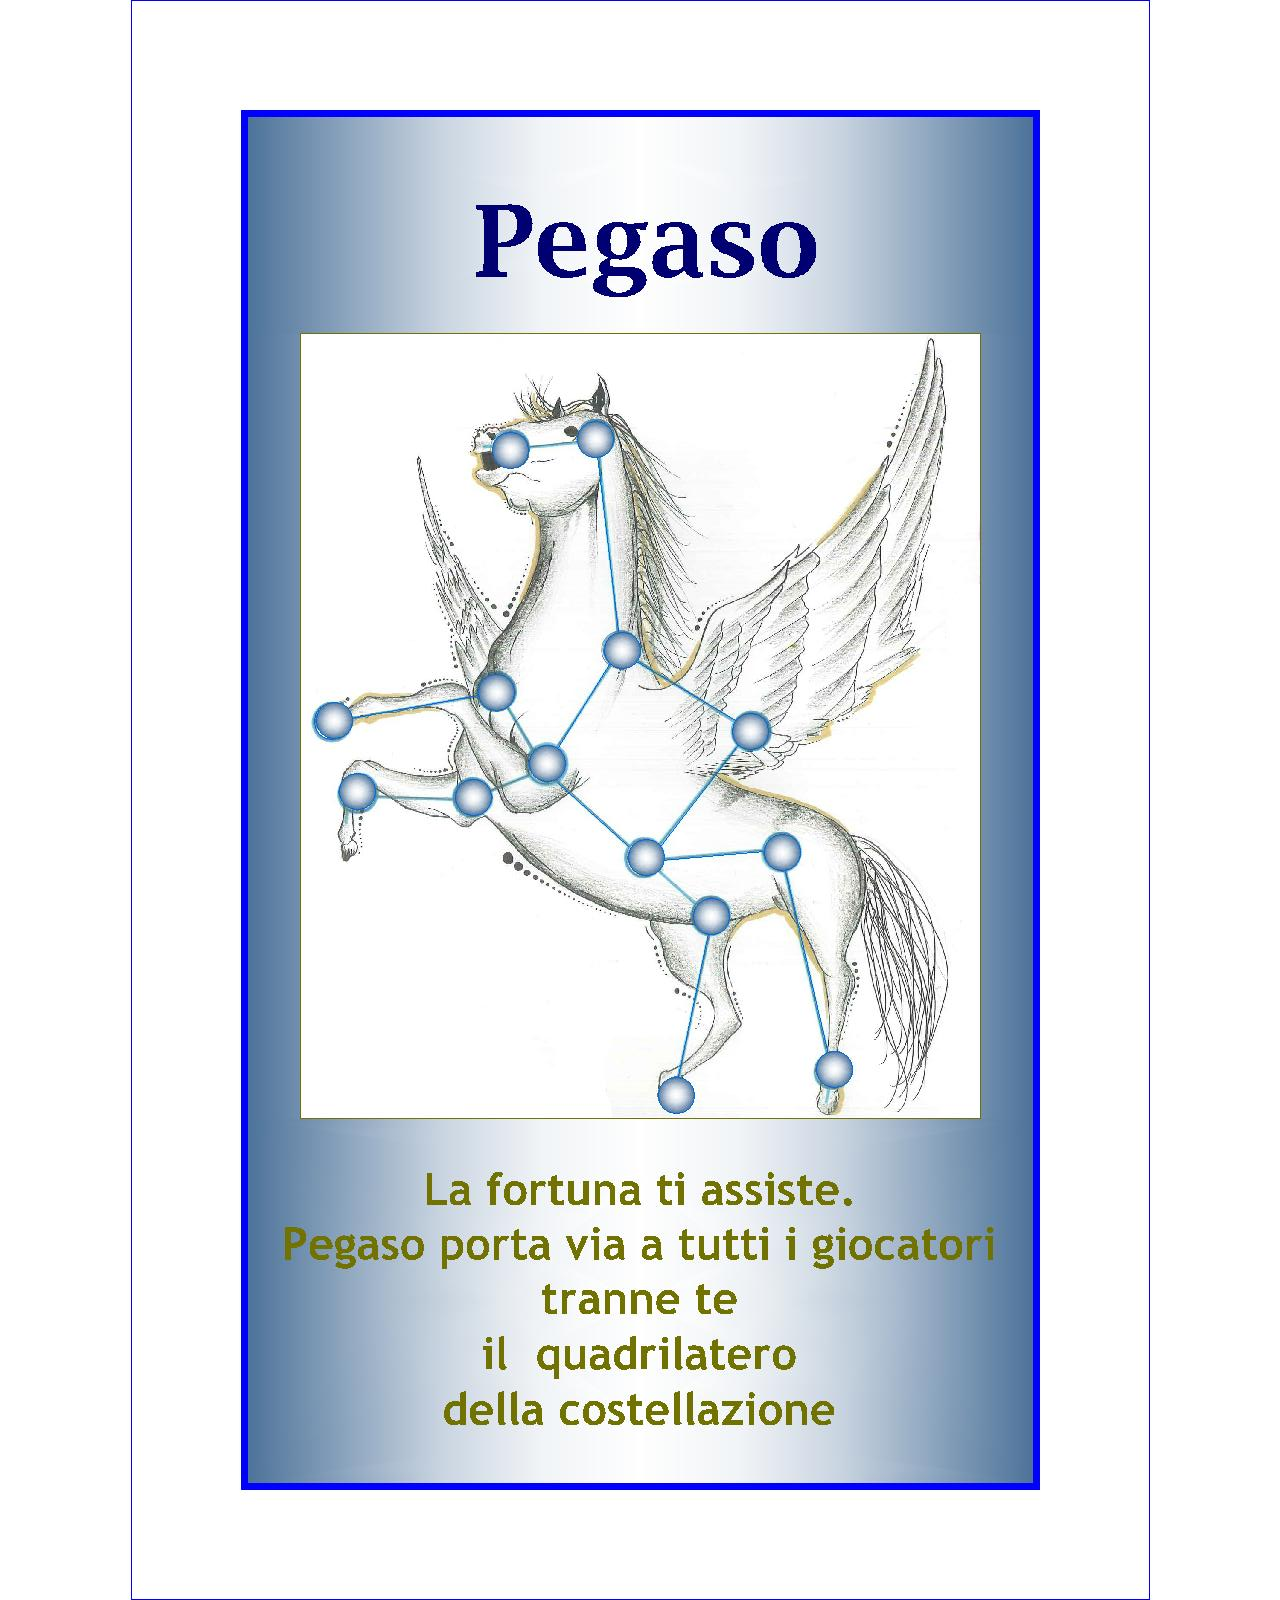 019. Pegaso-Model (Coach M.C. Petroli)